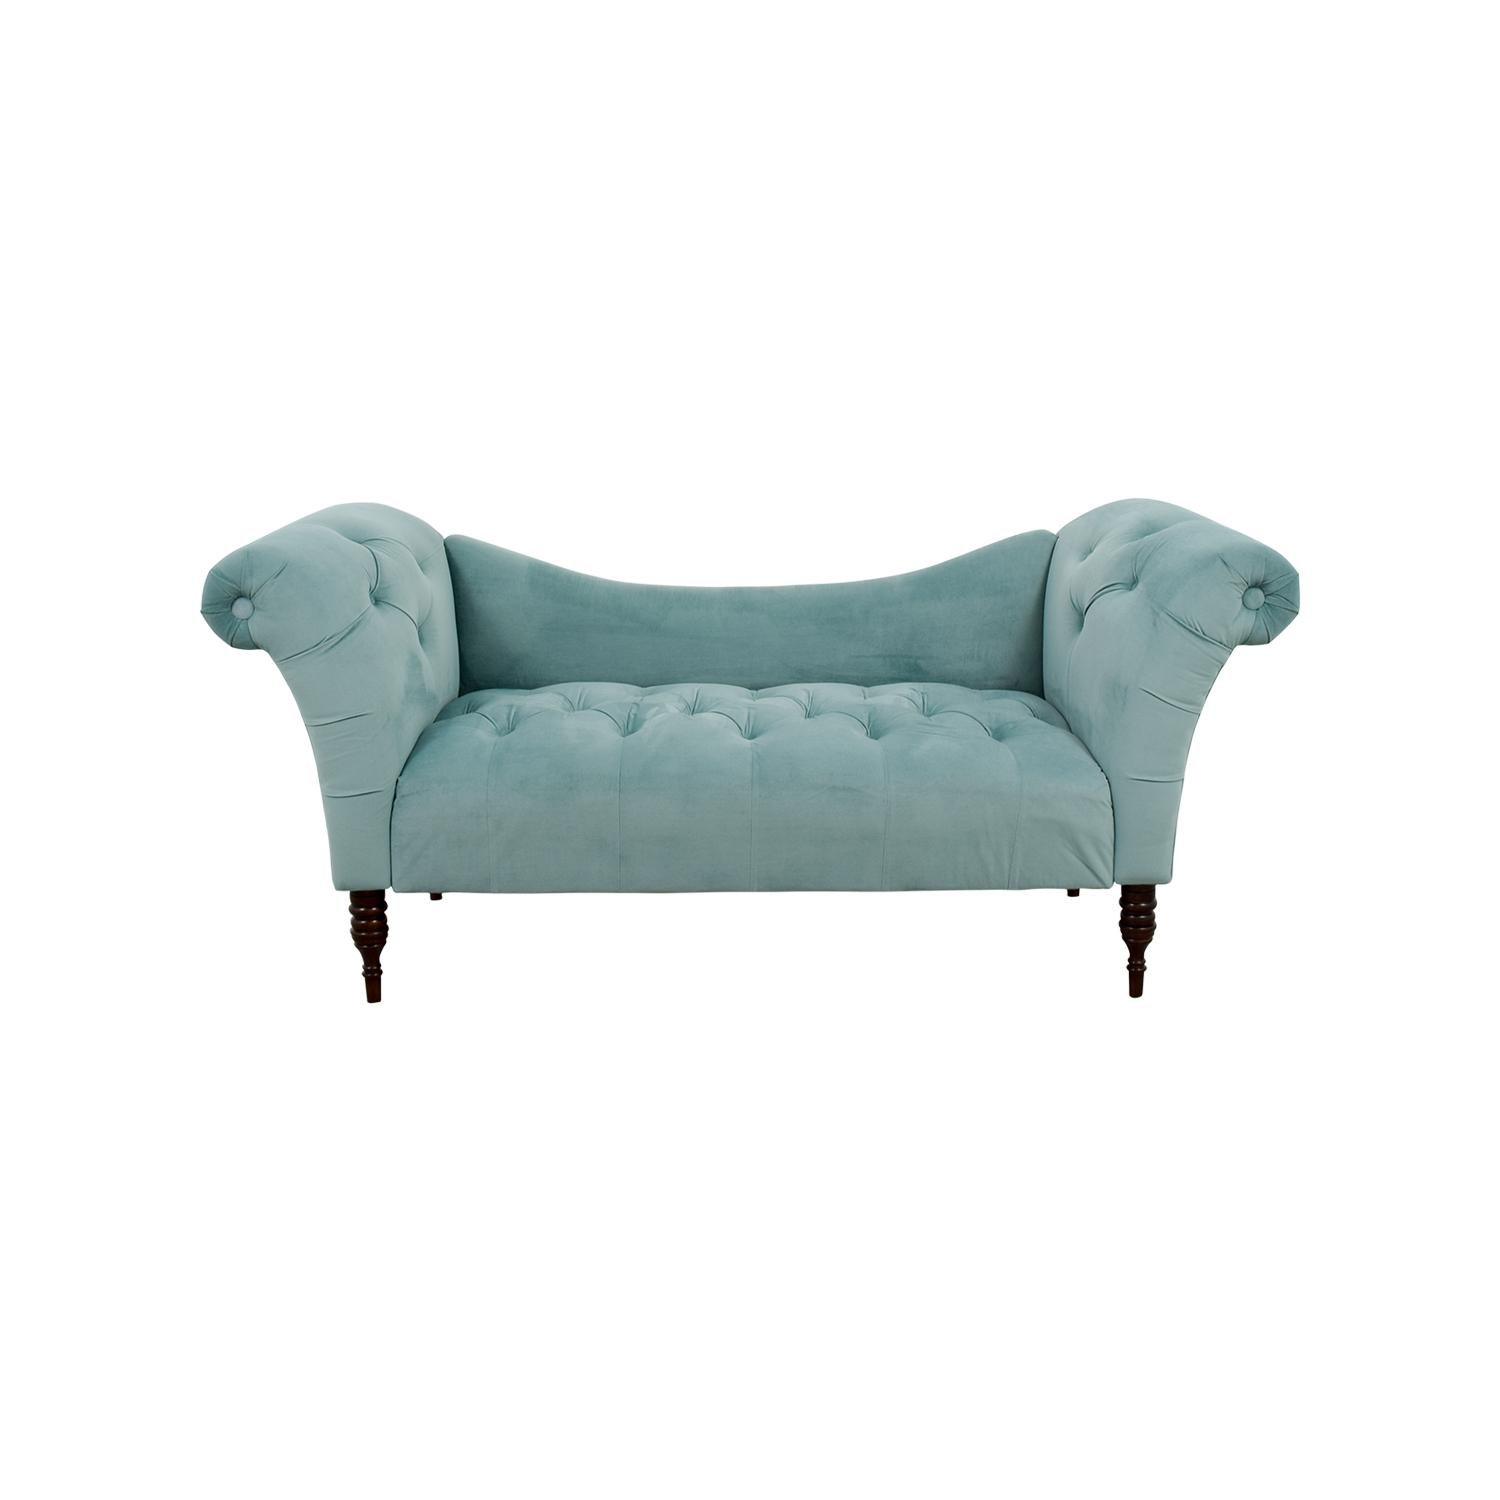 25% Off – Skyline Skyline Aqua Tufted Velvet Settee / Sofas With Skyline Sofas (Image 1 of 20)